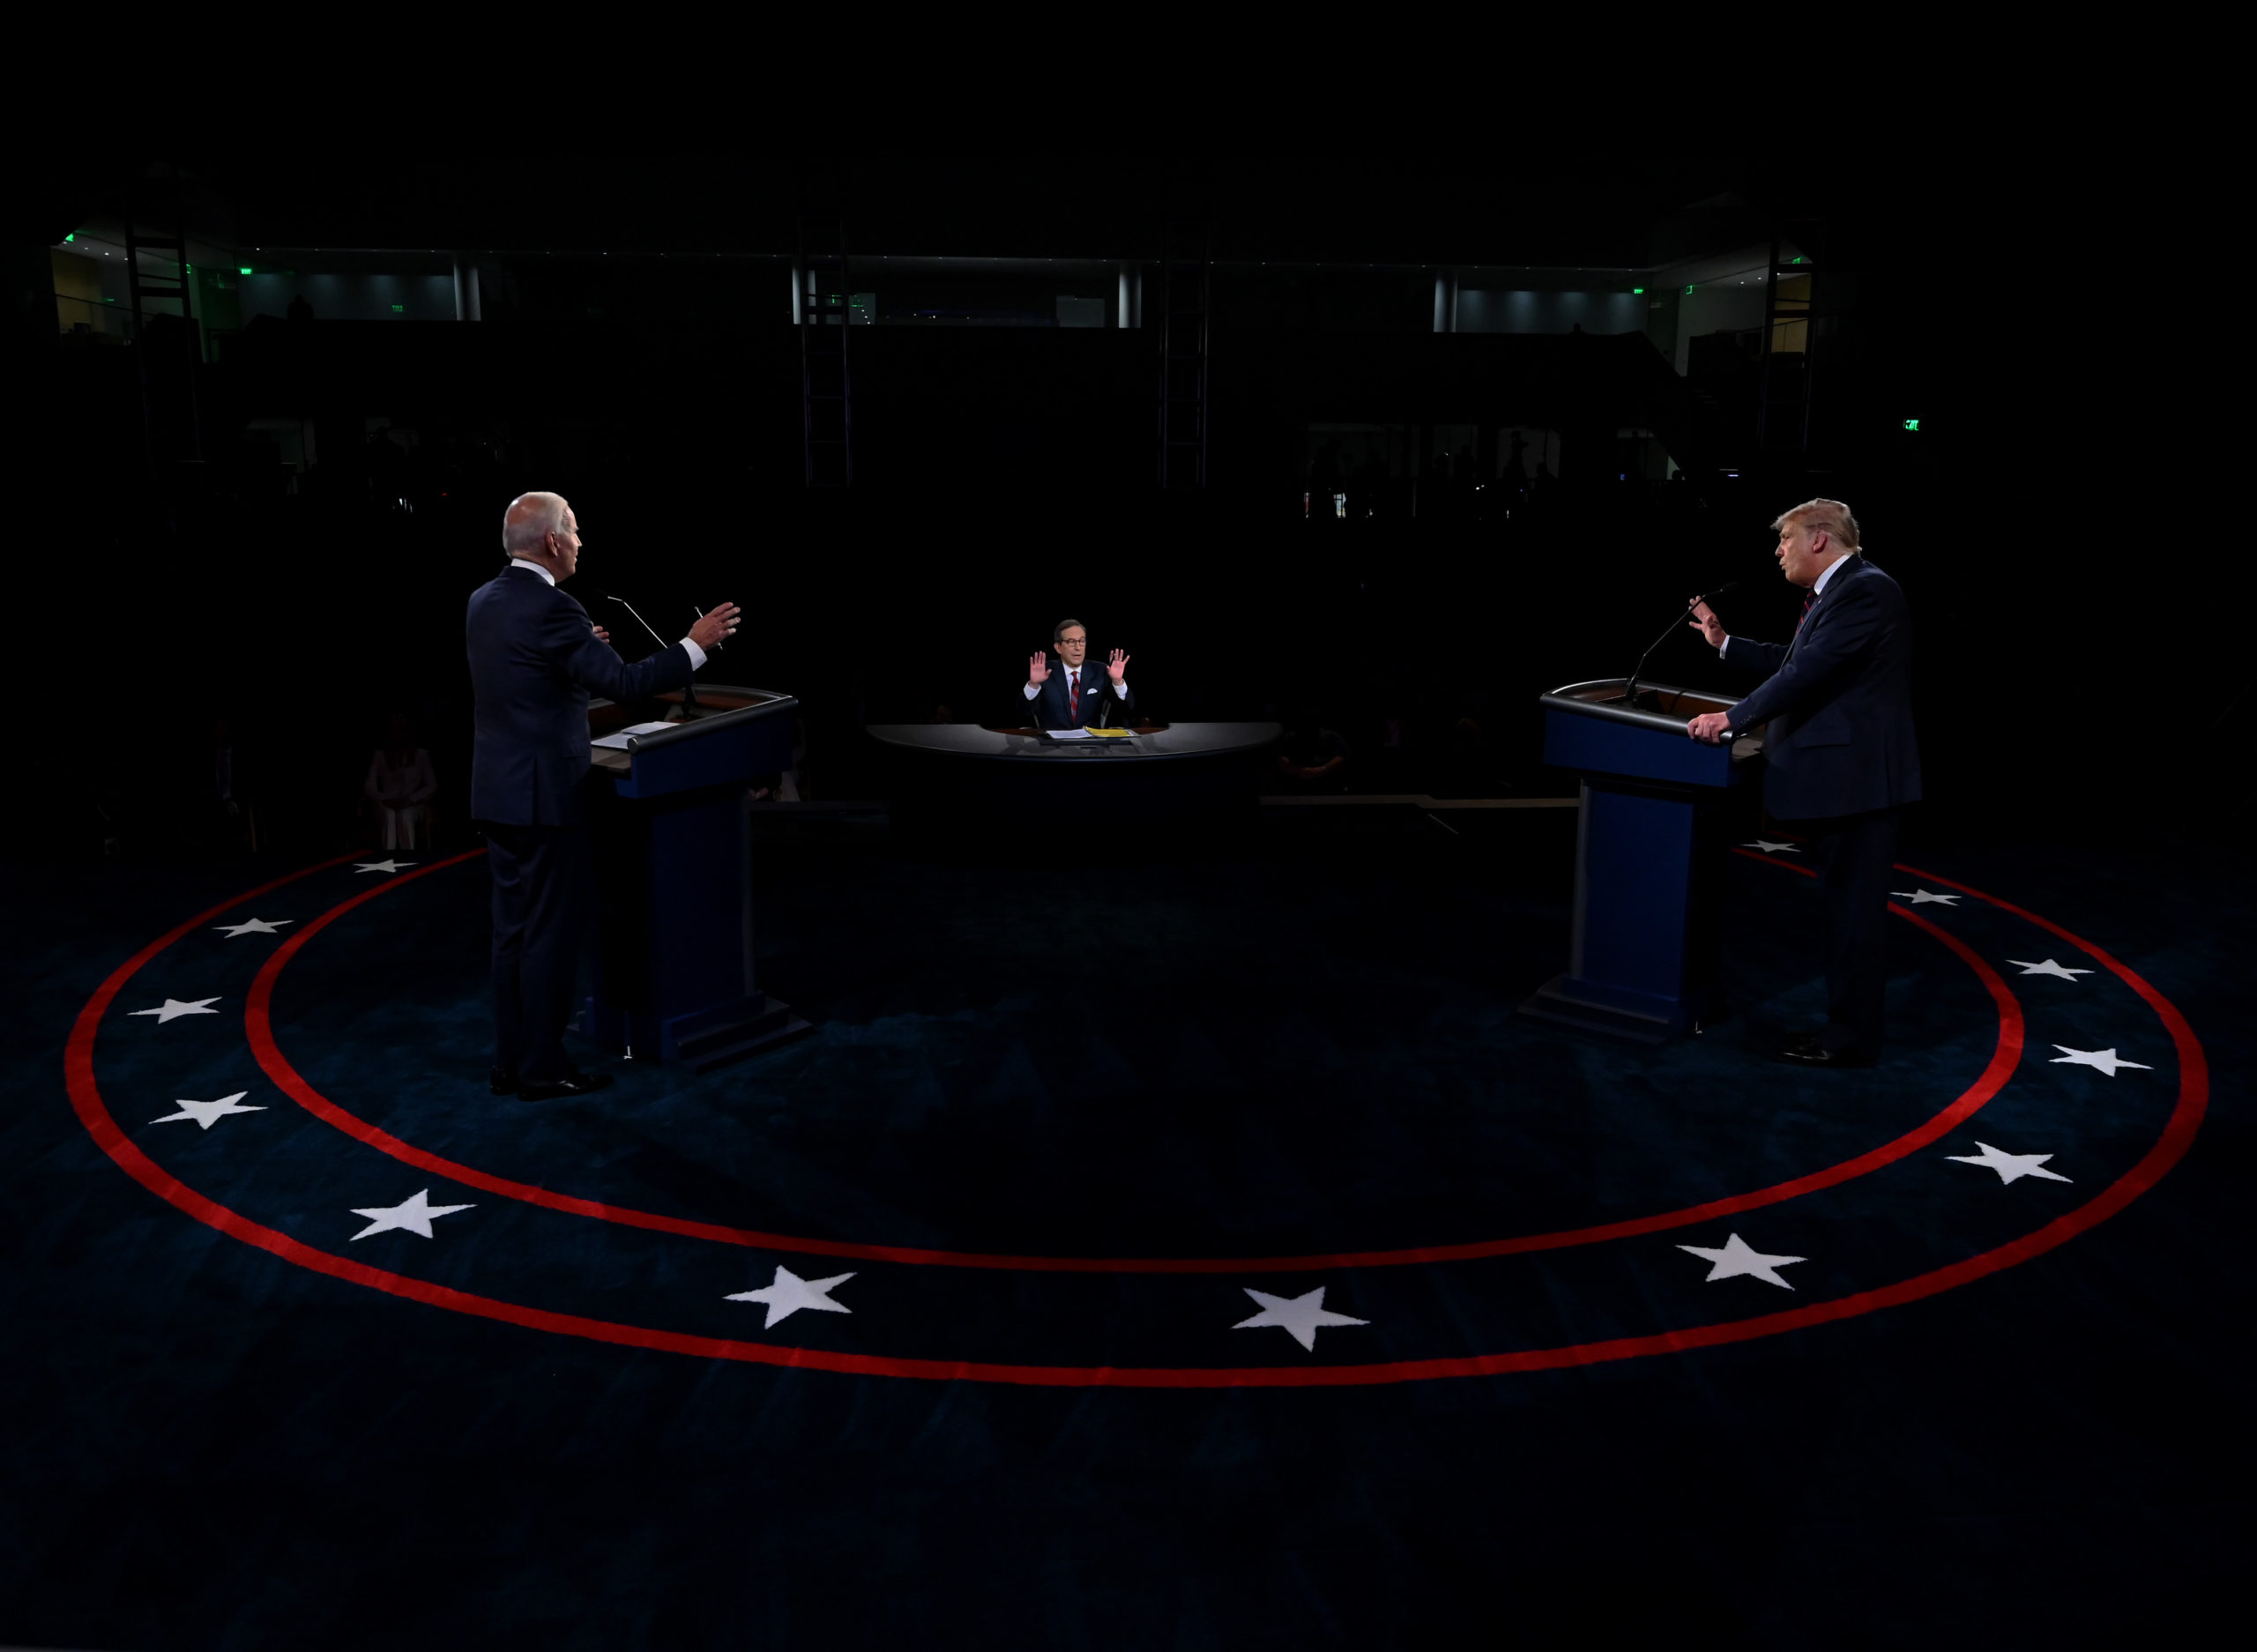 CLEVELAND, OHIO - SEPTEMBER 29: US President Donald Trump (R) and former Vice President and Democratic presidential nominee Joe Biden participate in the first presidential debate at the Health Education Campus of Case Western Reserve University on September 29, 2020 in Cleveland, Ohio. This is the first of three planned debates between the two candidates in the lead up to the election on November 3. (Photo by Olivier Douliery-Pool/Getty Images)